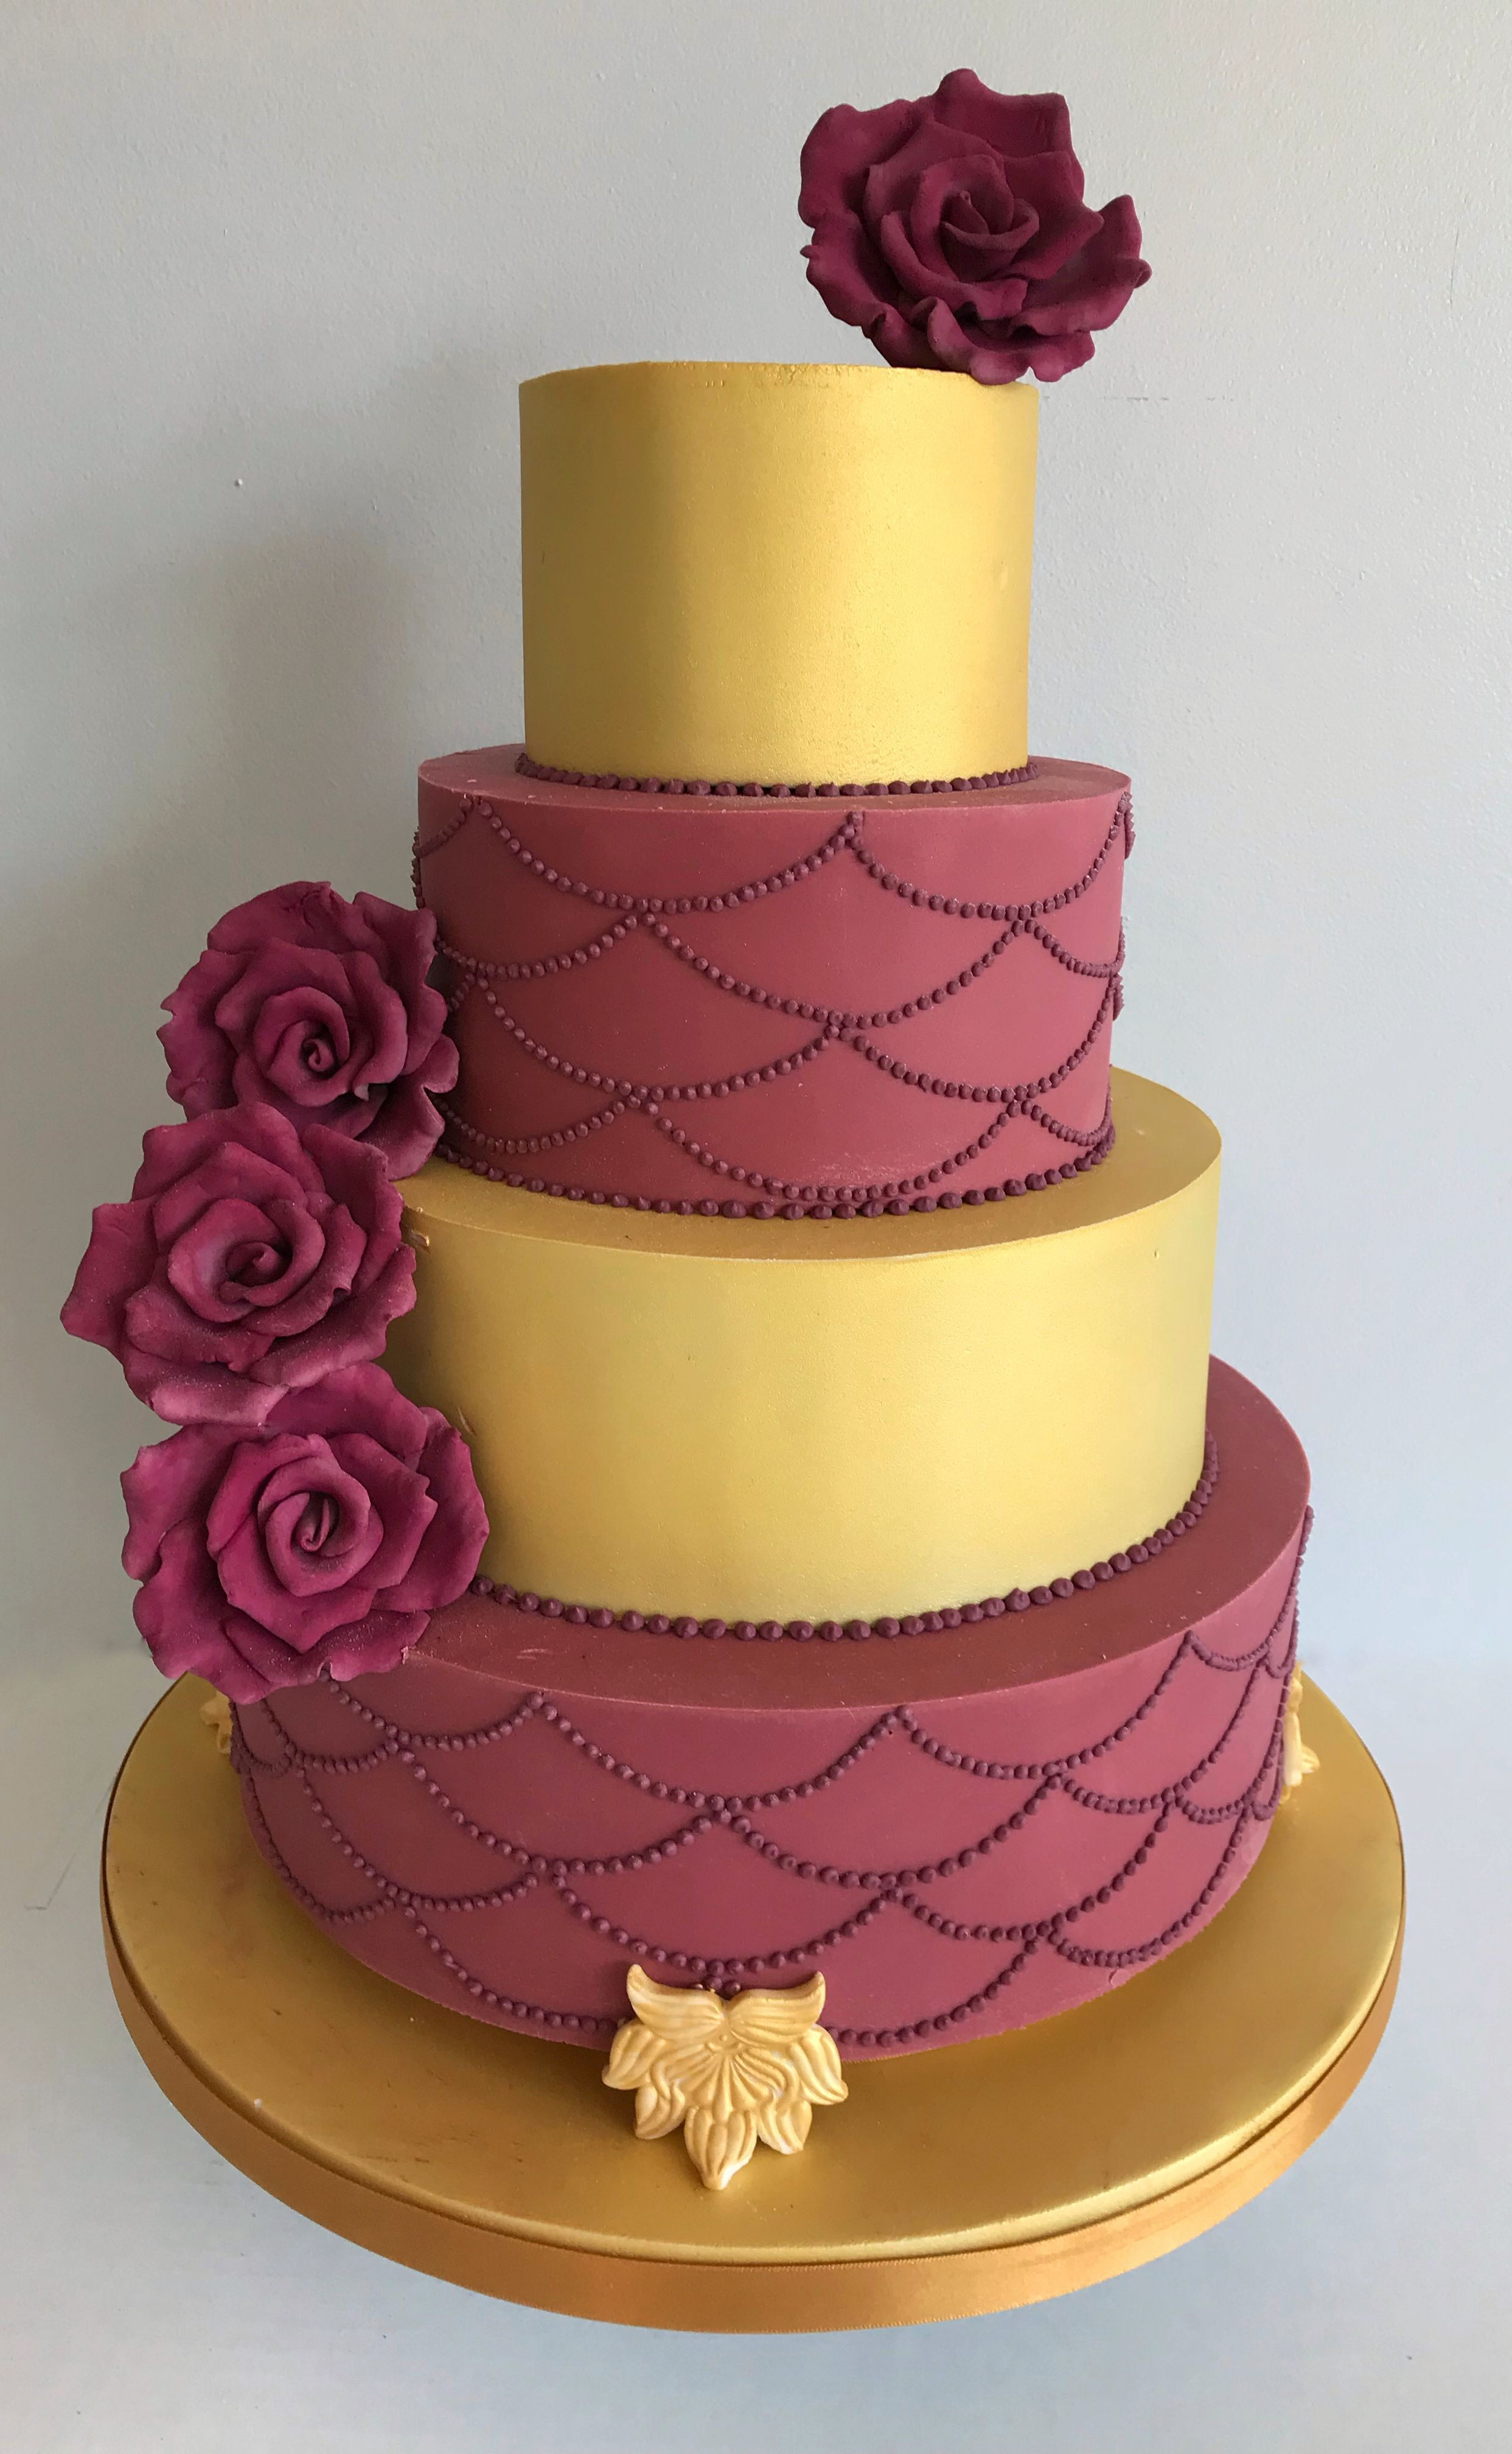 Gold And Red 4 Tiered Luxury Wedding Cake By La Belle Company Based In Bedfordshire